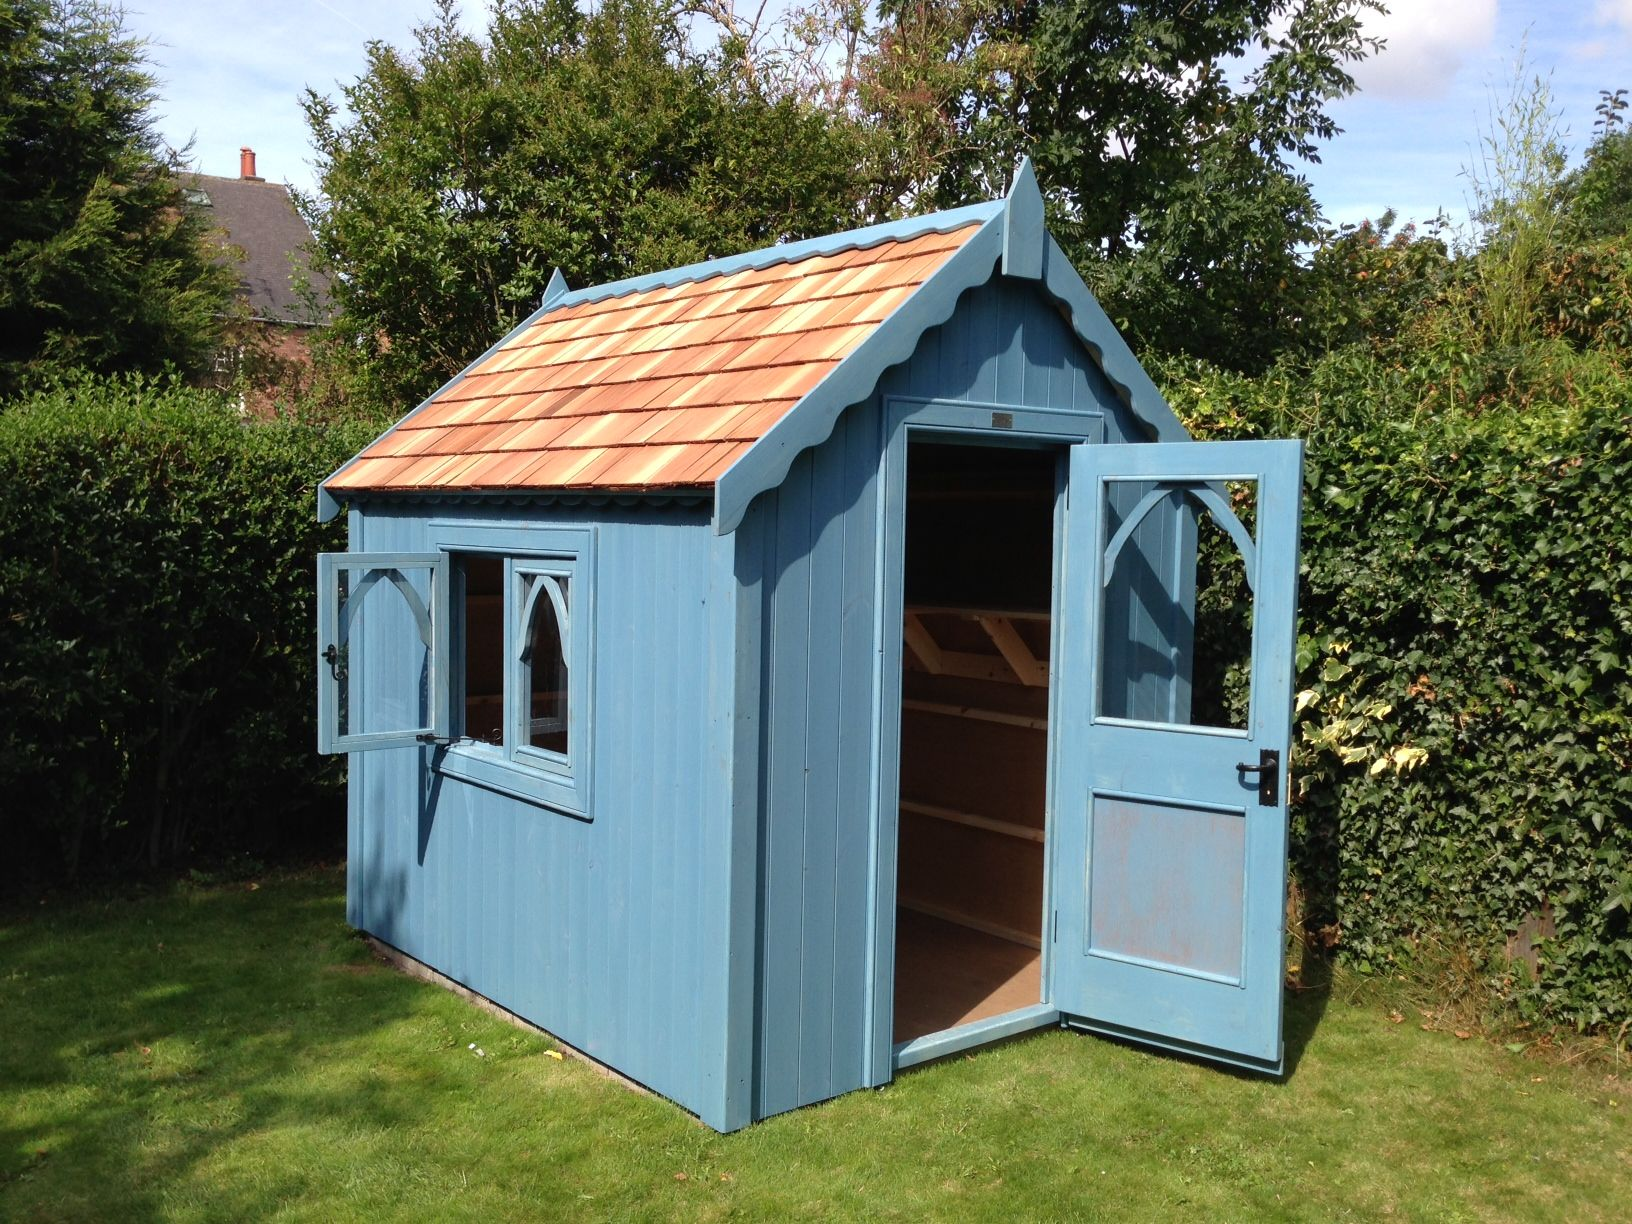 Best 8Ft X 6Ft Gothic Shed In Northern Pike With A Cedar Shingle Roof The Gothic Shed Pinterest 400 x 300